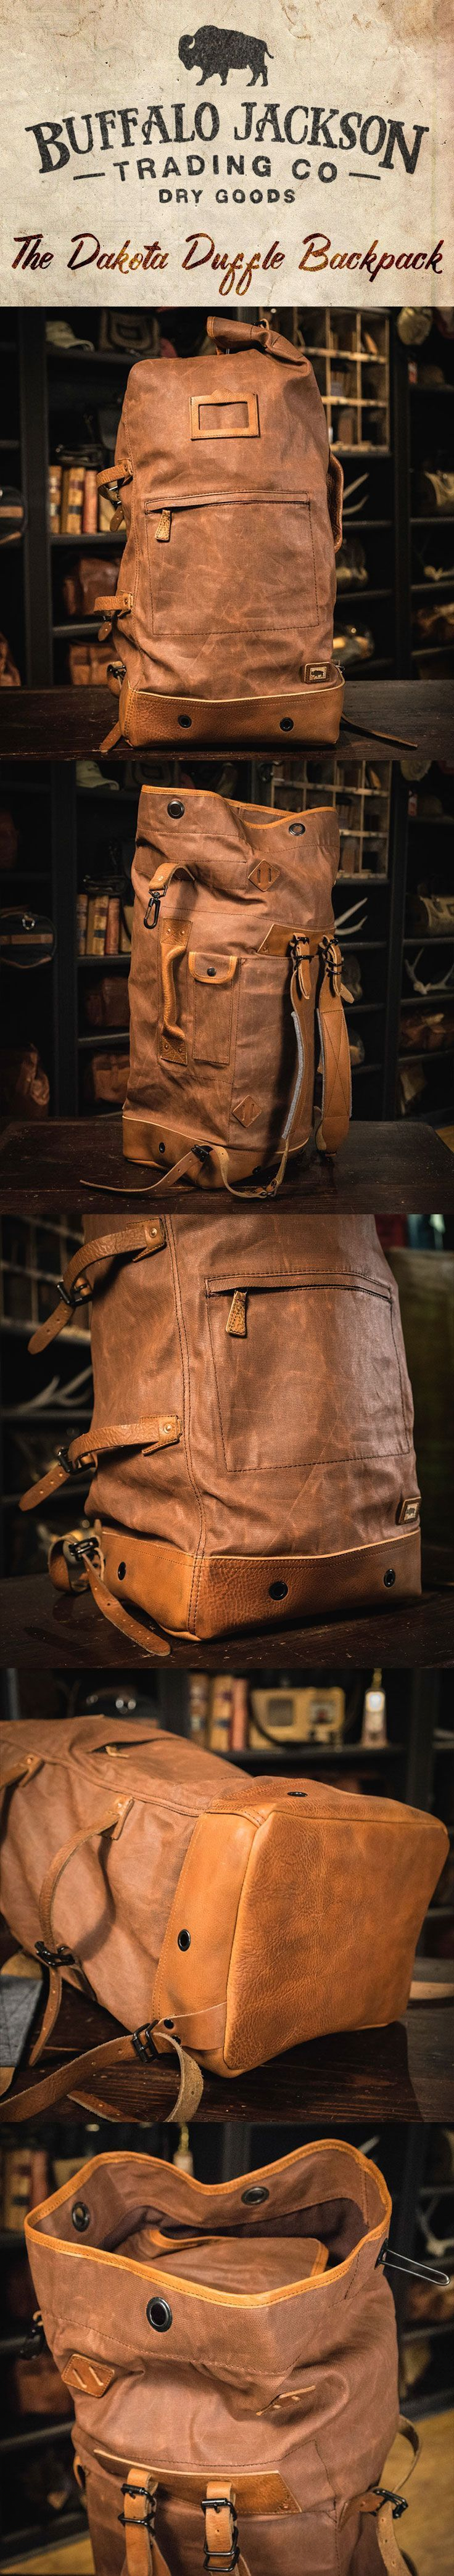 Crafted of waxed canvas and leather with a distressed vintage finish b867a9fc4f27f